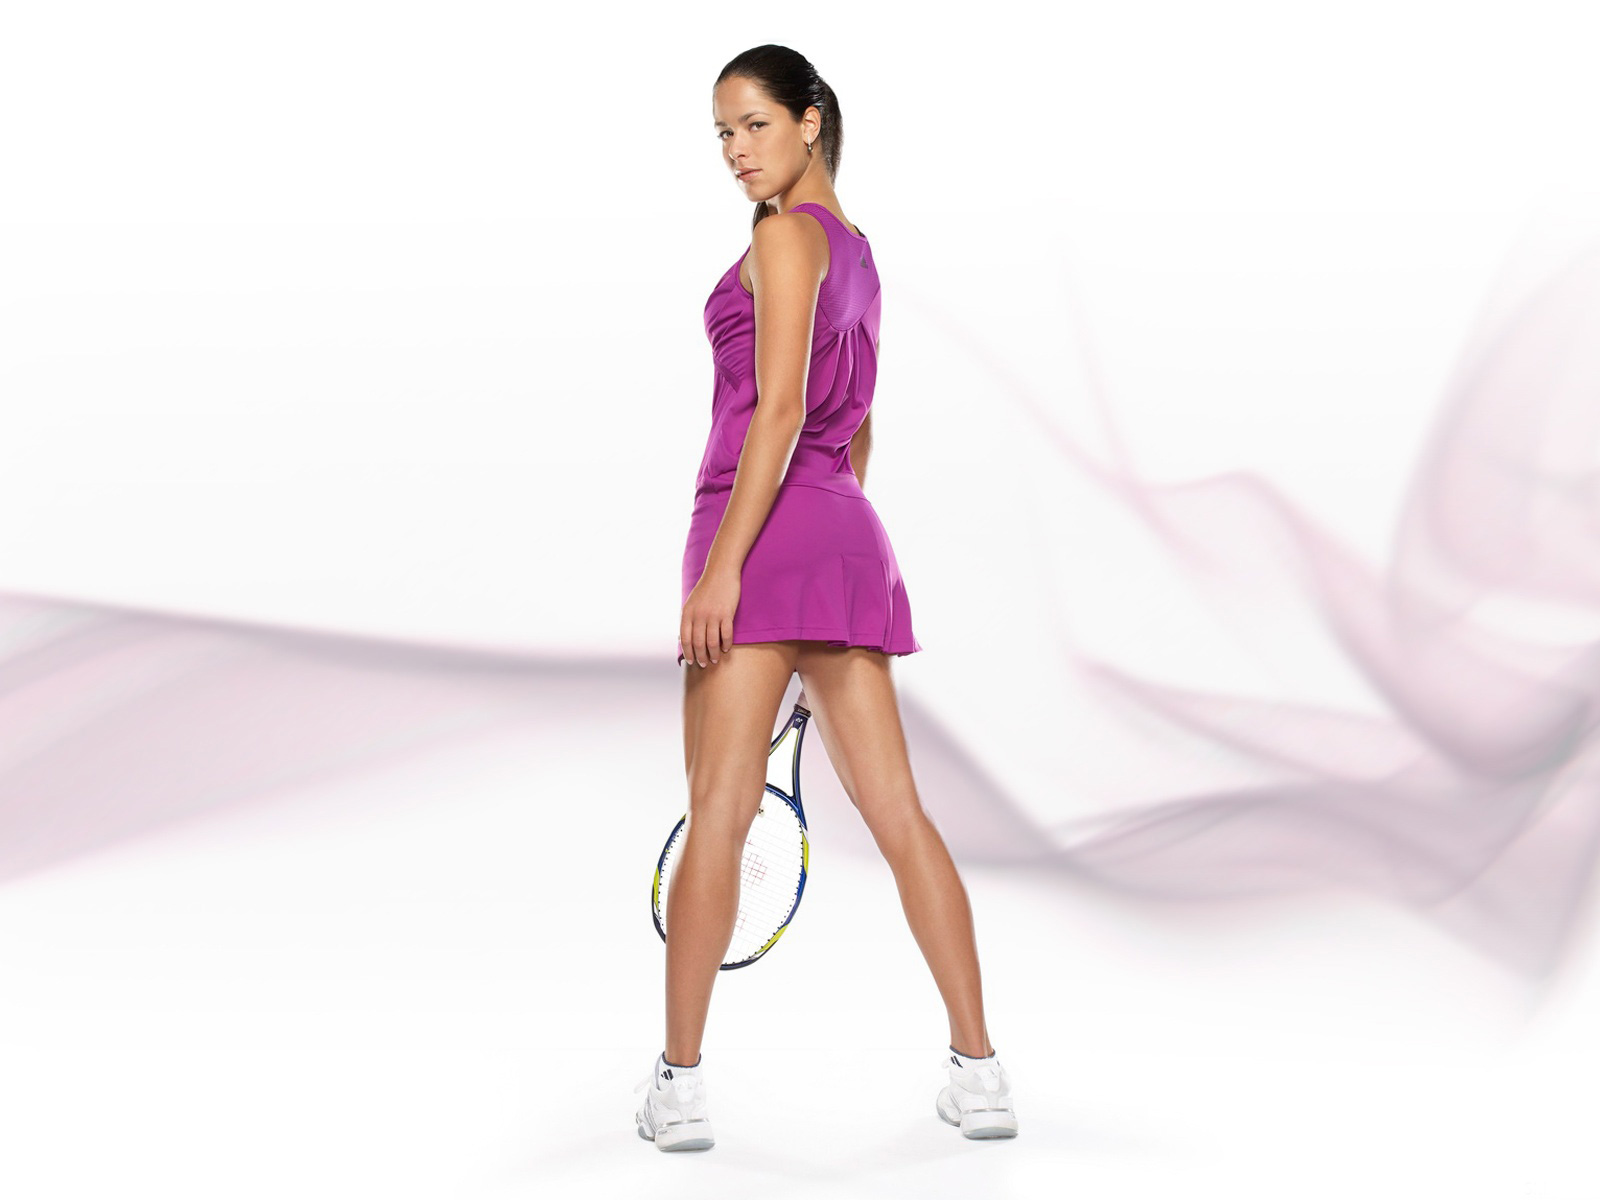 Ana Ivanovic 5 wallpaper